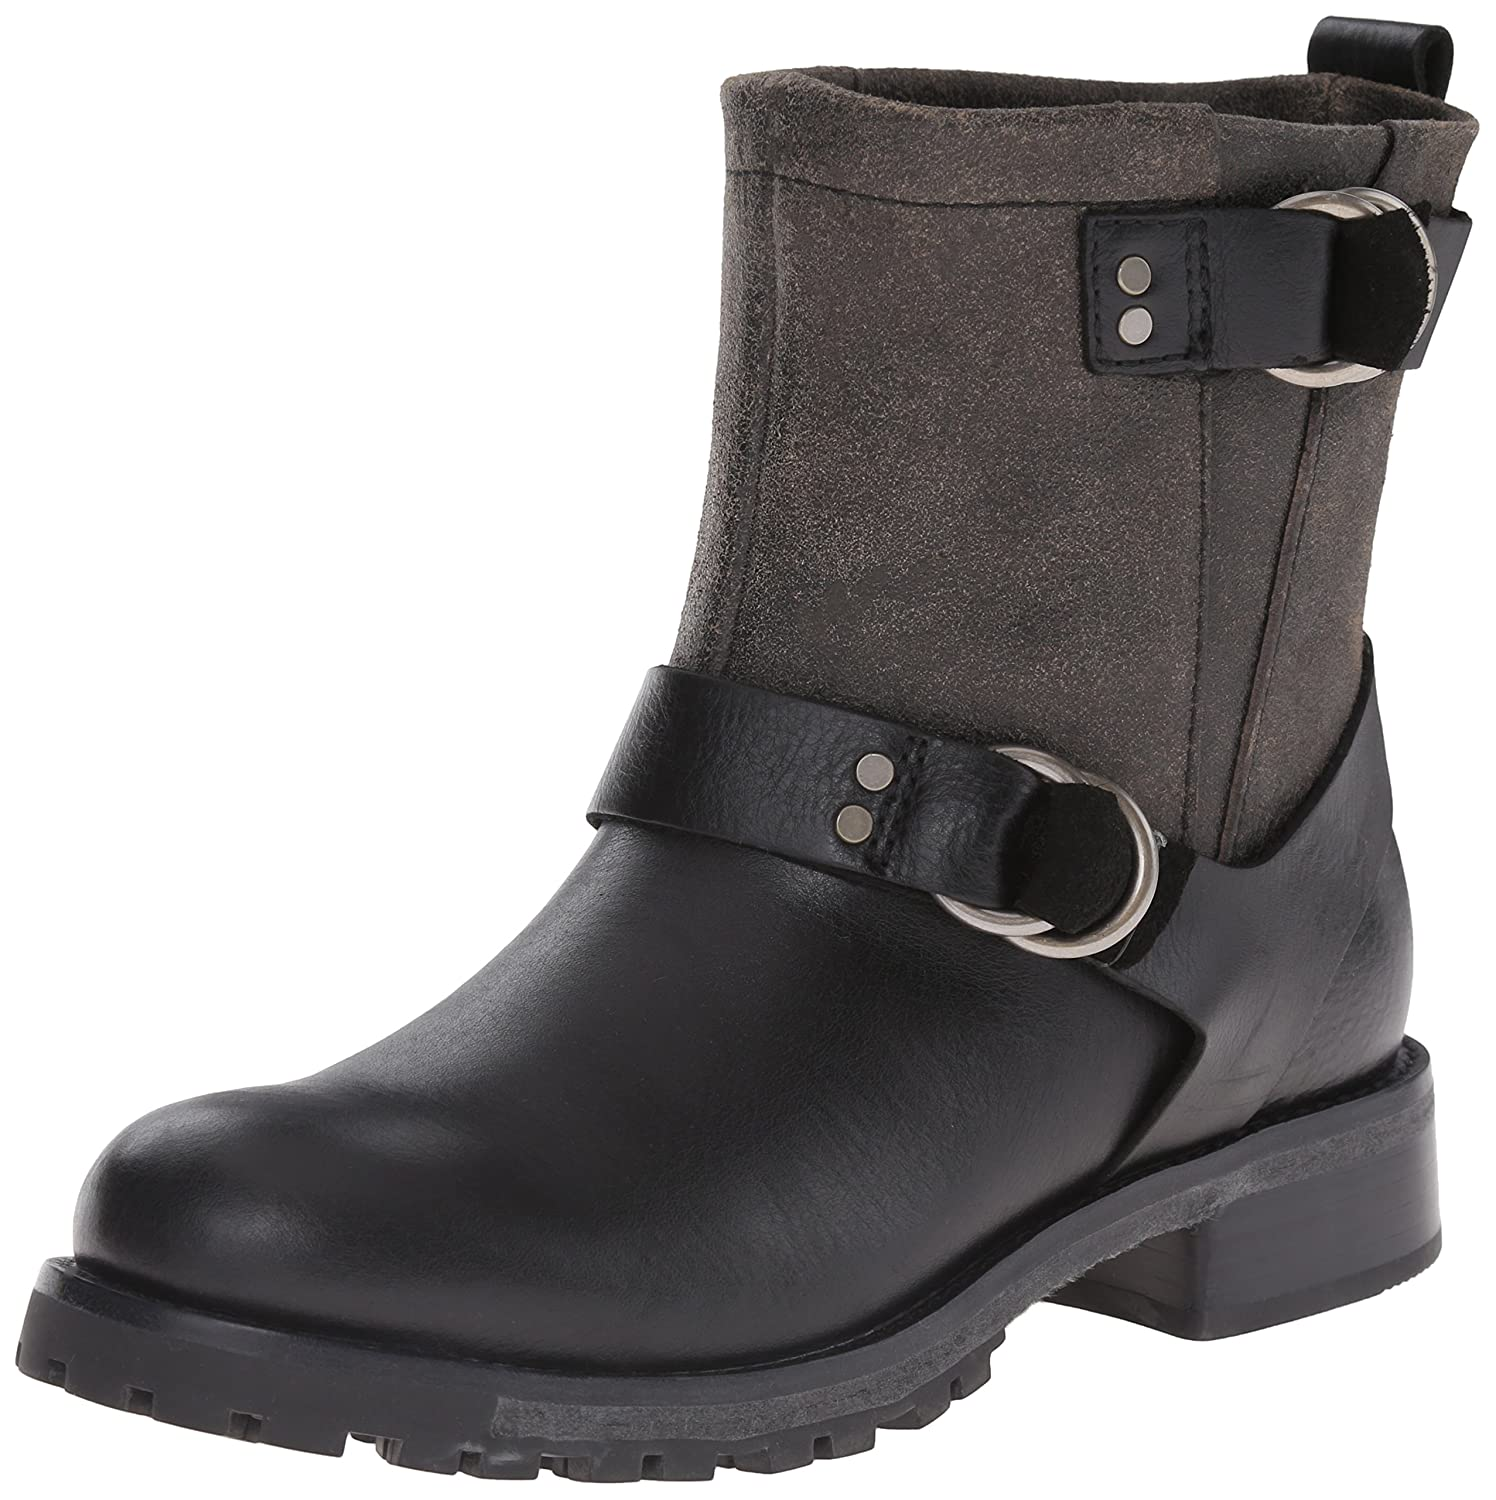 Woolrich Women's Baltimore Harness Boot B00SA687QK 10 B(M) US|Black Crackle Leather